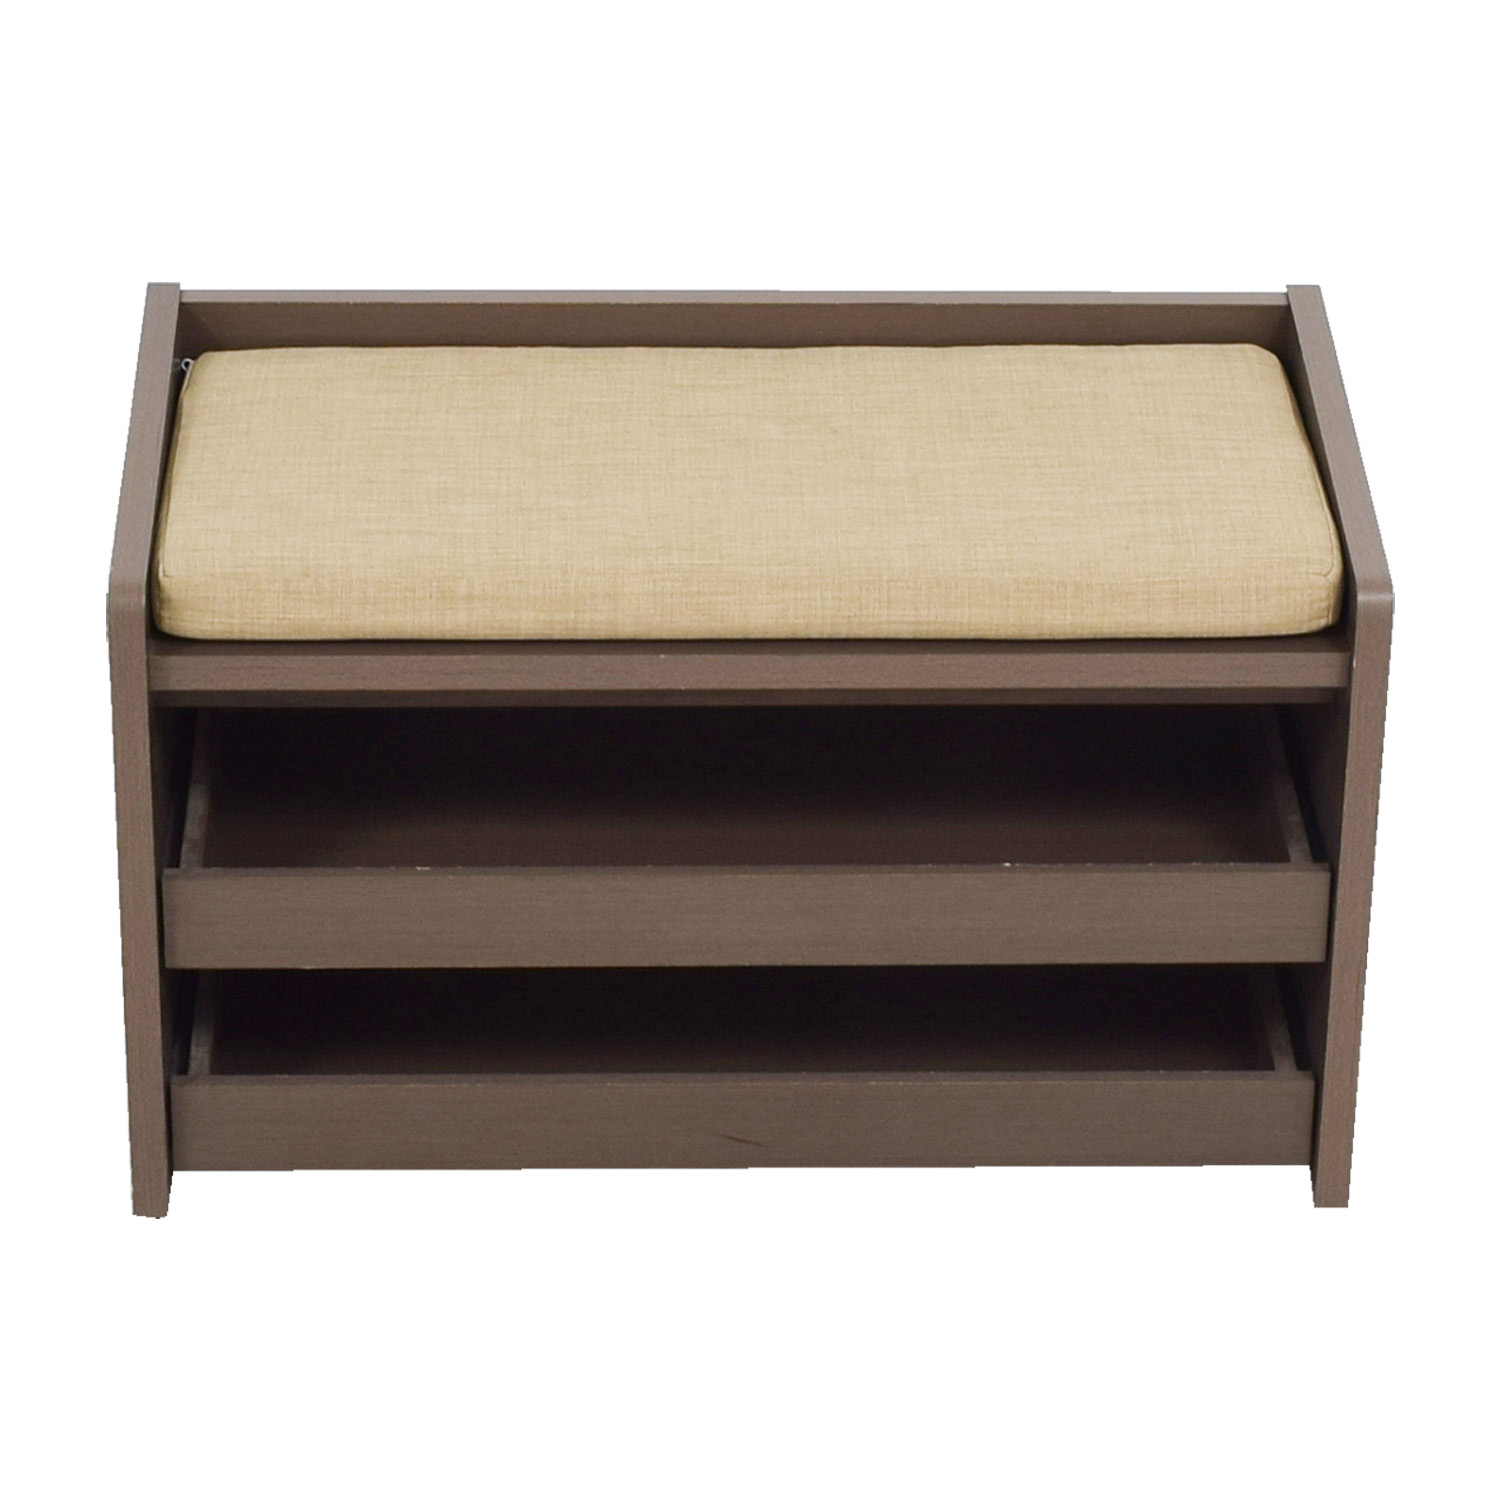 The Container Store The Container Store Mercer Grey Entryway Storage Bench on sale